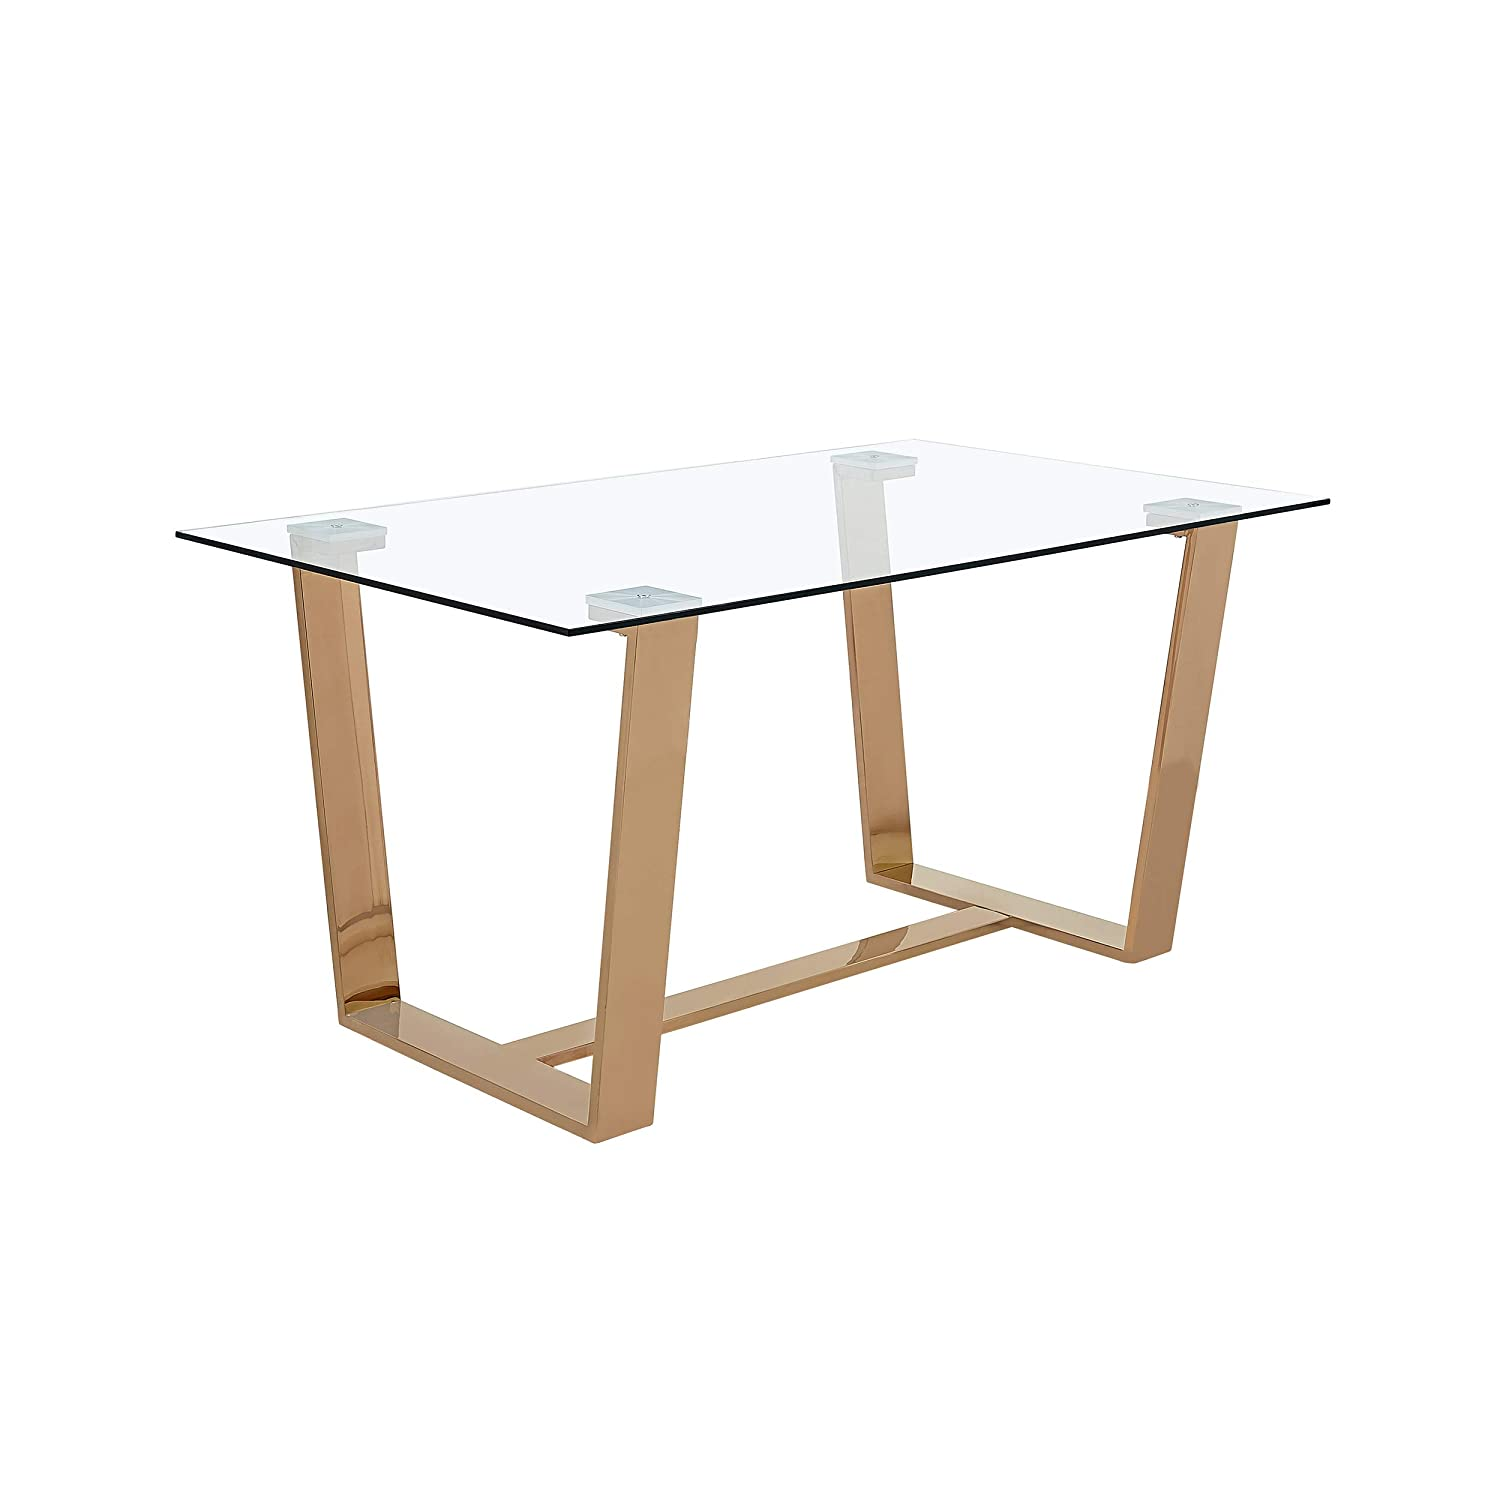 Christopher Knight Home Kit Modern Tempered Glass Dining Table, Rose Gold, Clear